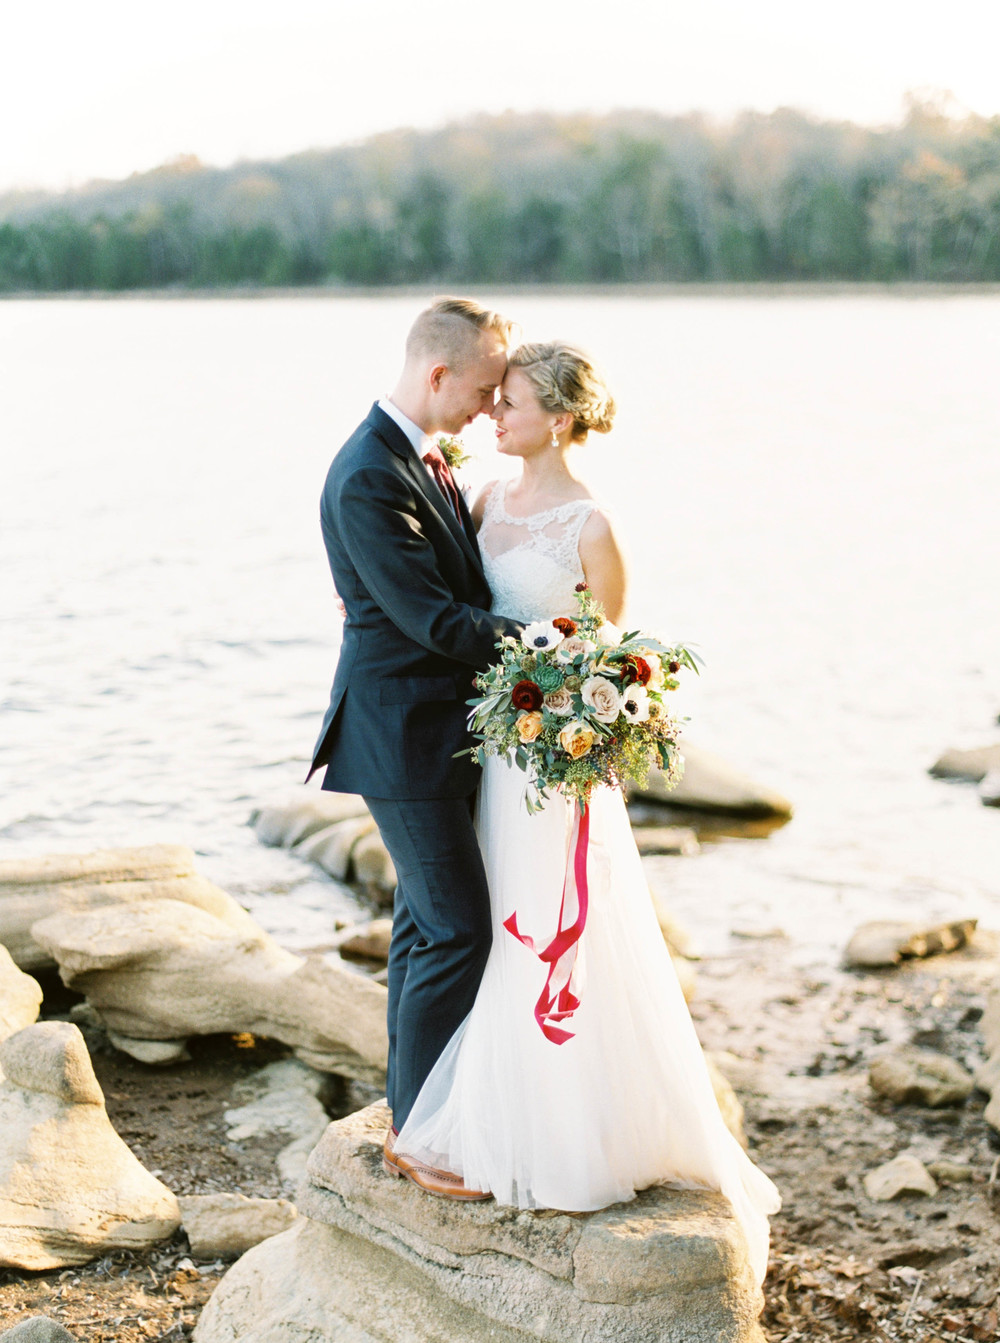 Newlywed Lakeside Portraits // Nashville Wedding Florist